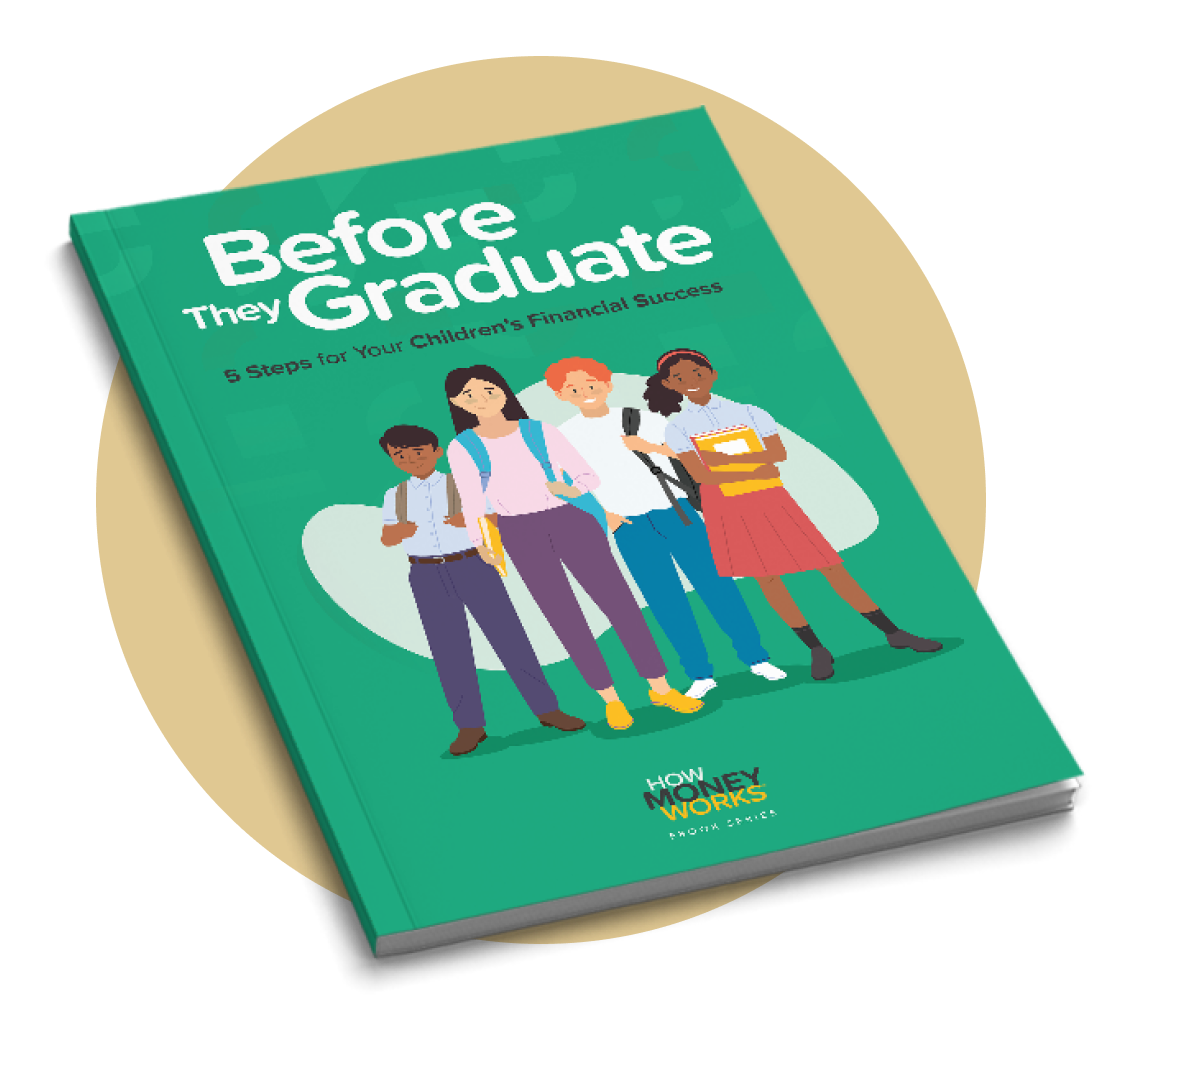 Before They Graduate book cover